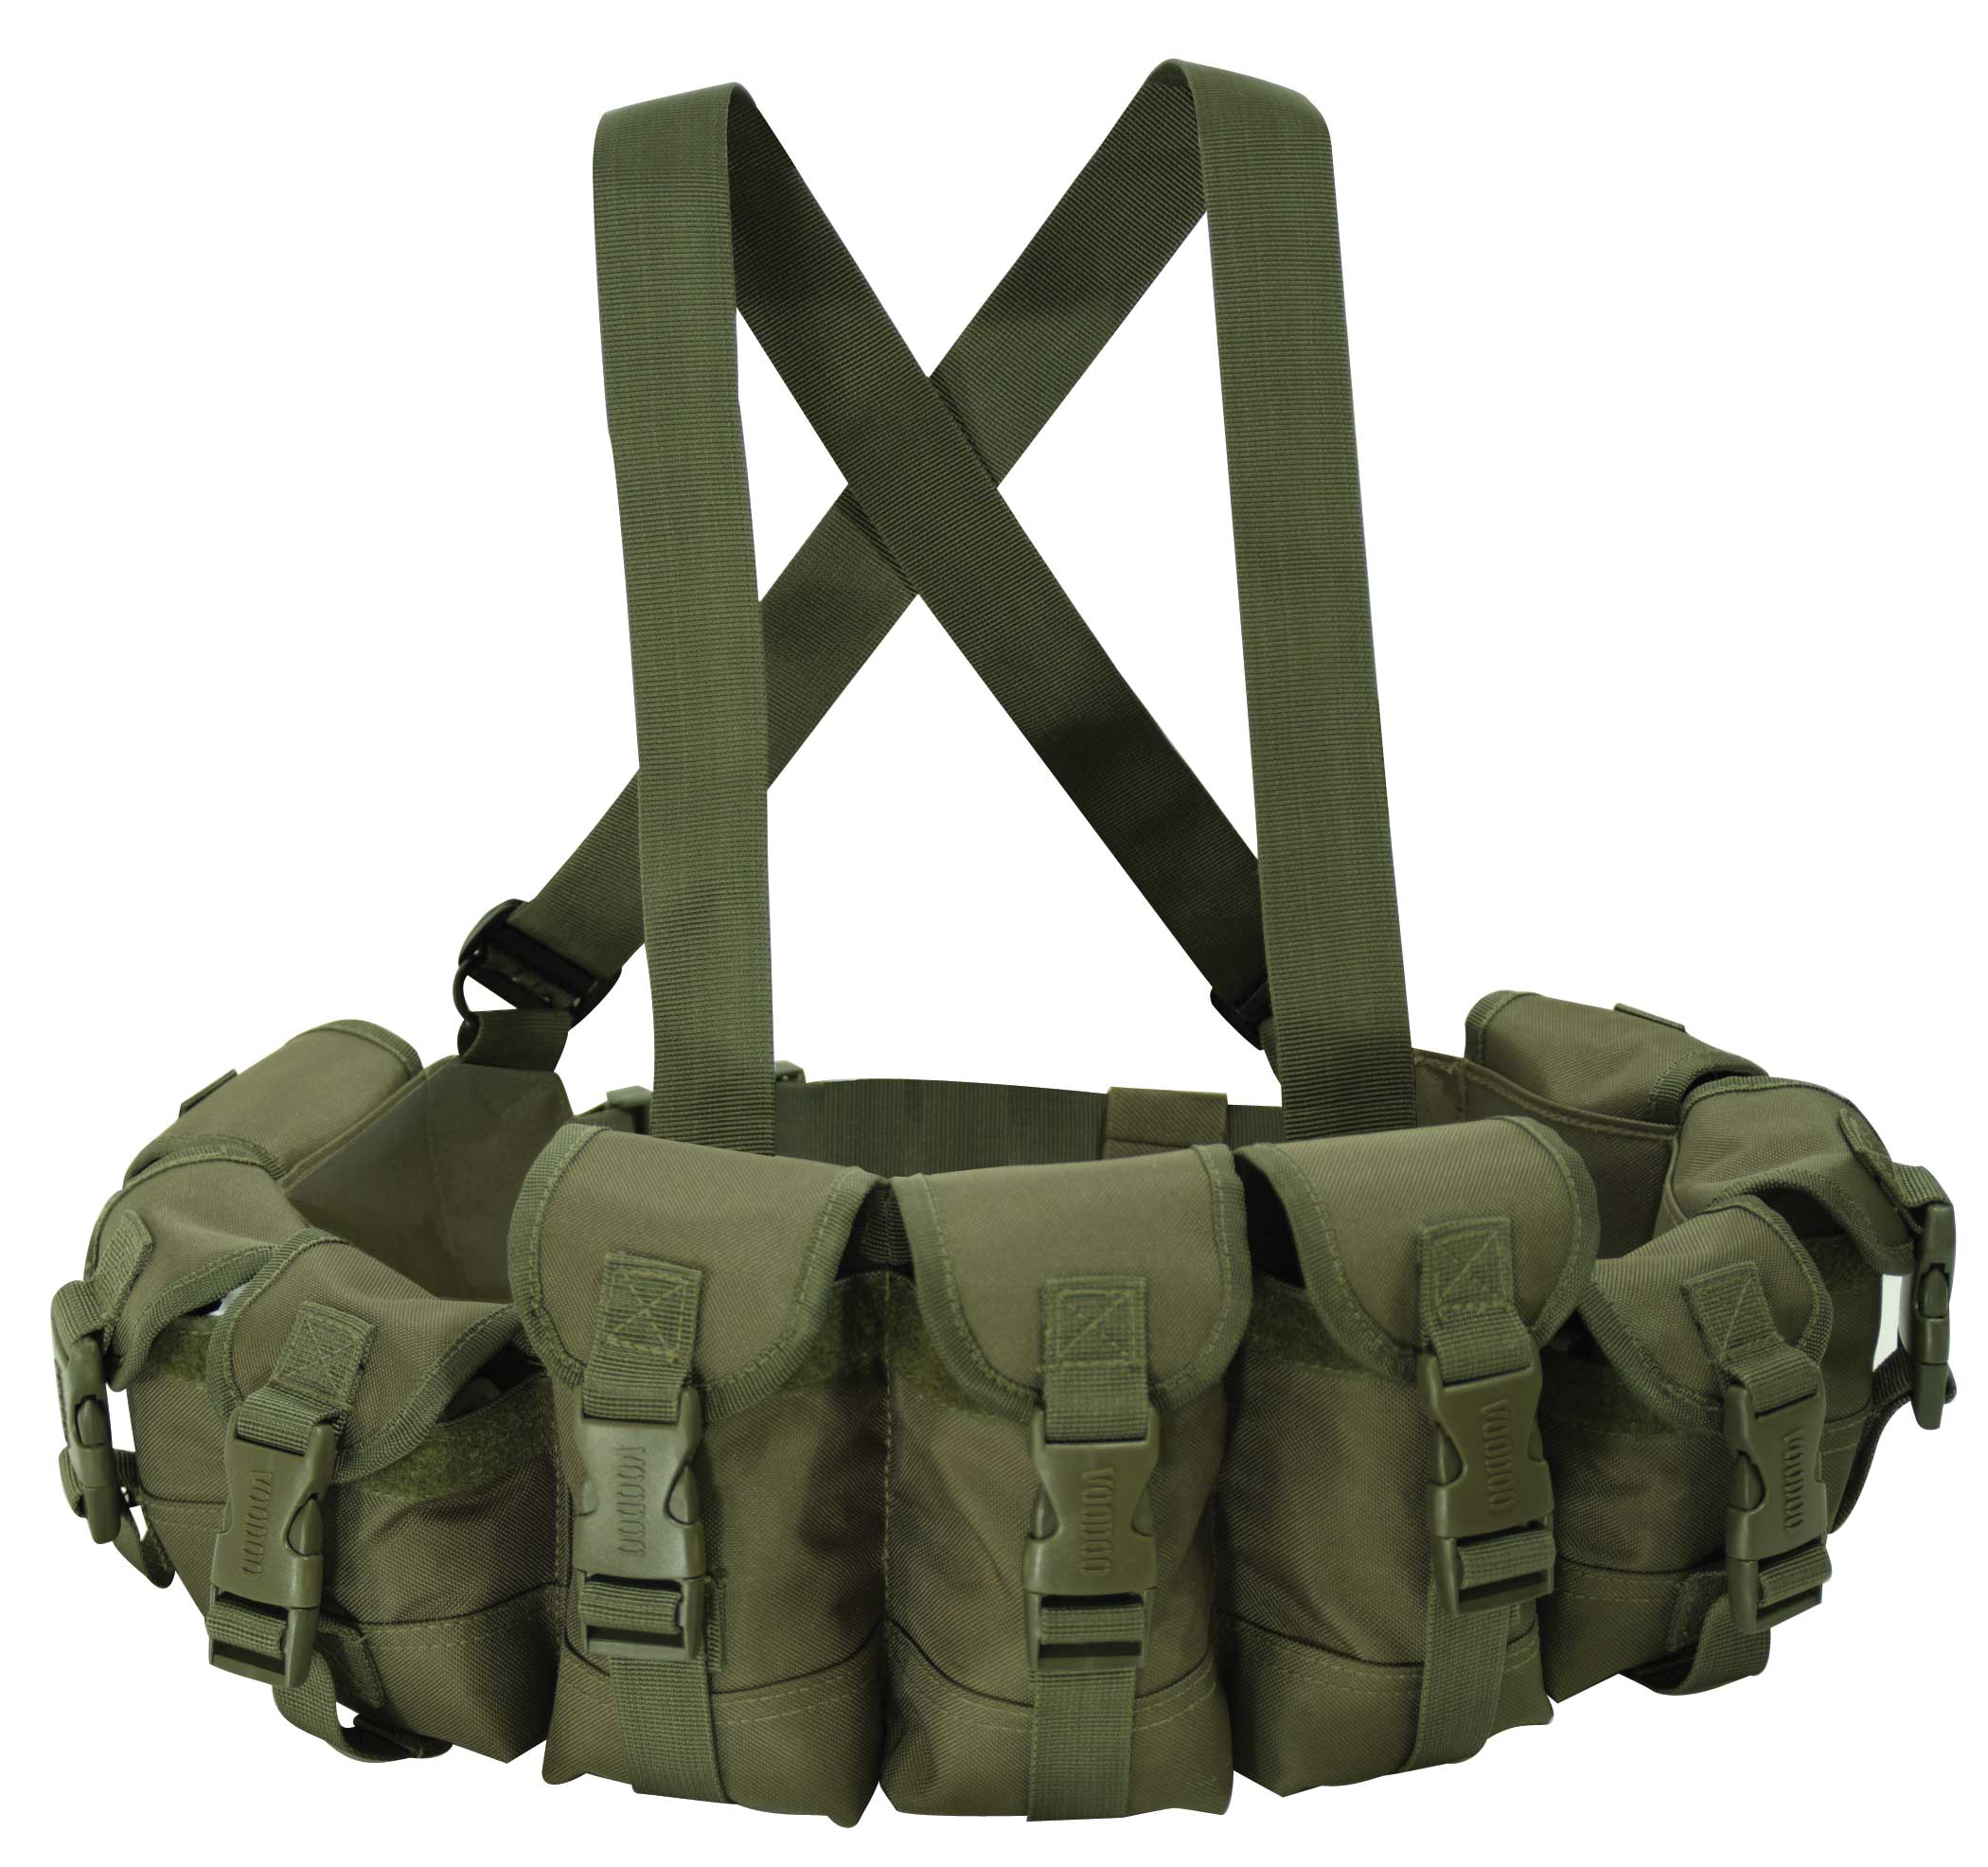 9-Pocket Chest Rig